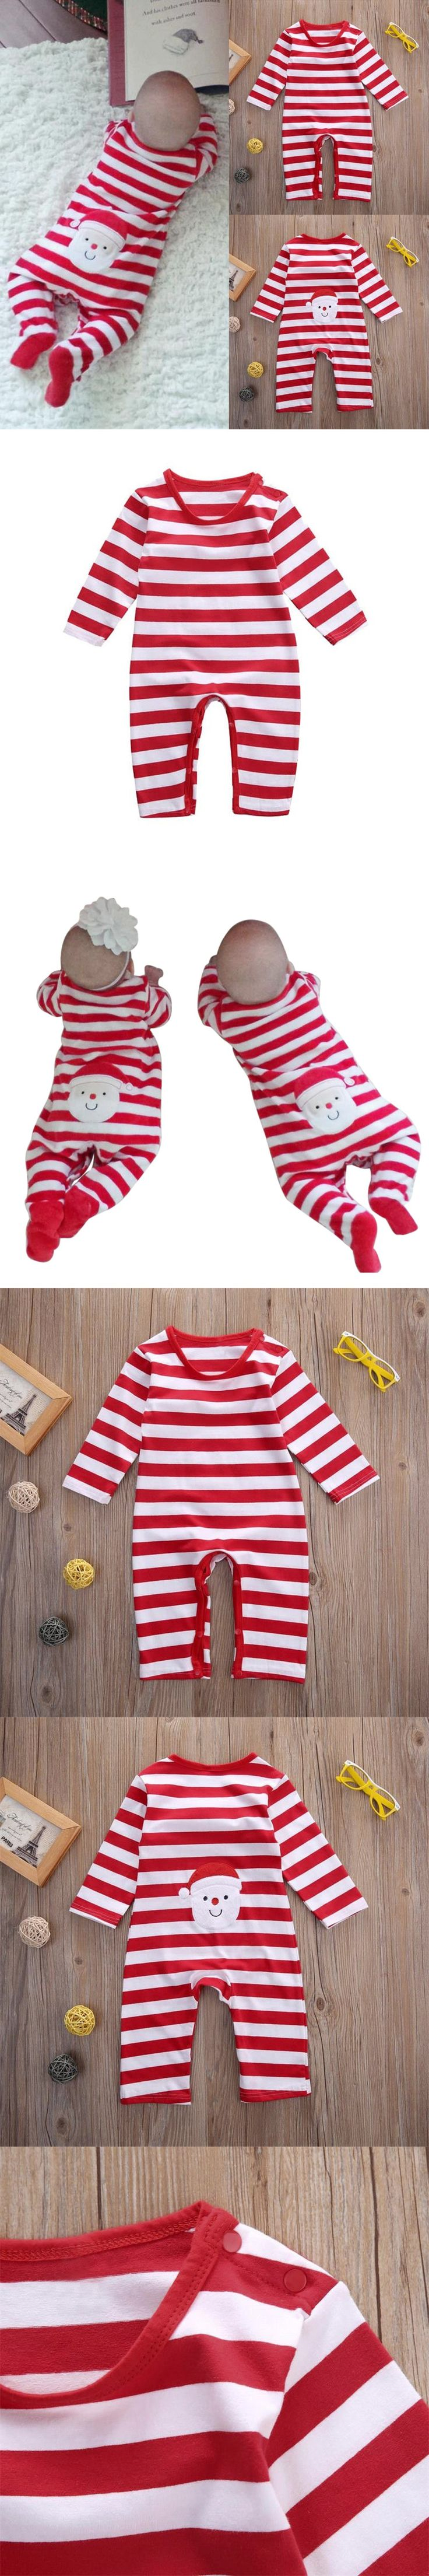 3-18M Christmas Baby Romper Infant Winter Clothes Kids Baby Boys Girls Long Sleeve Playsuit Cotton Clothes $8.77